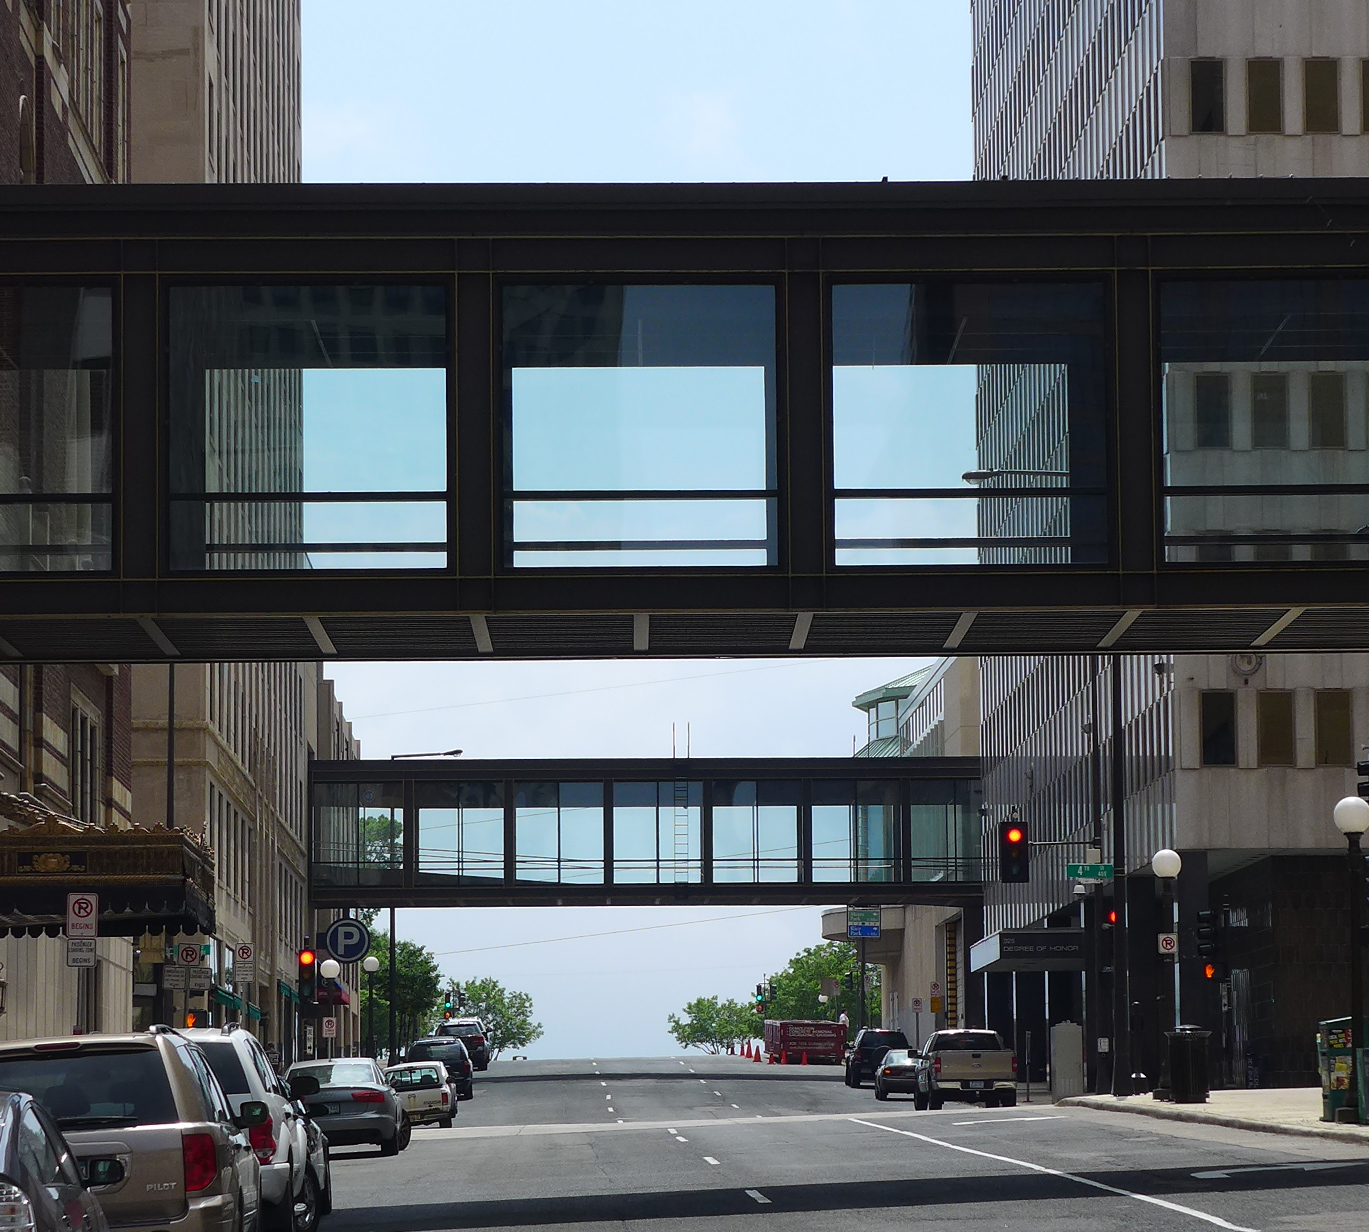 st paul skyway system. minnesota by design – st paul skyway system